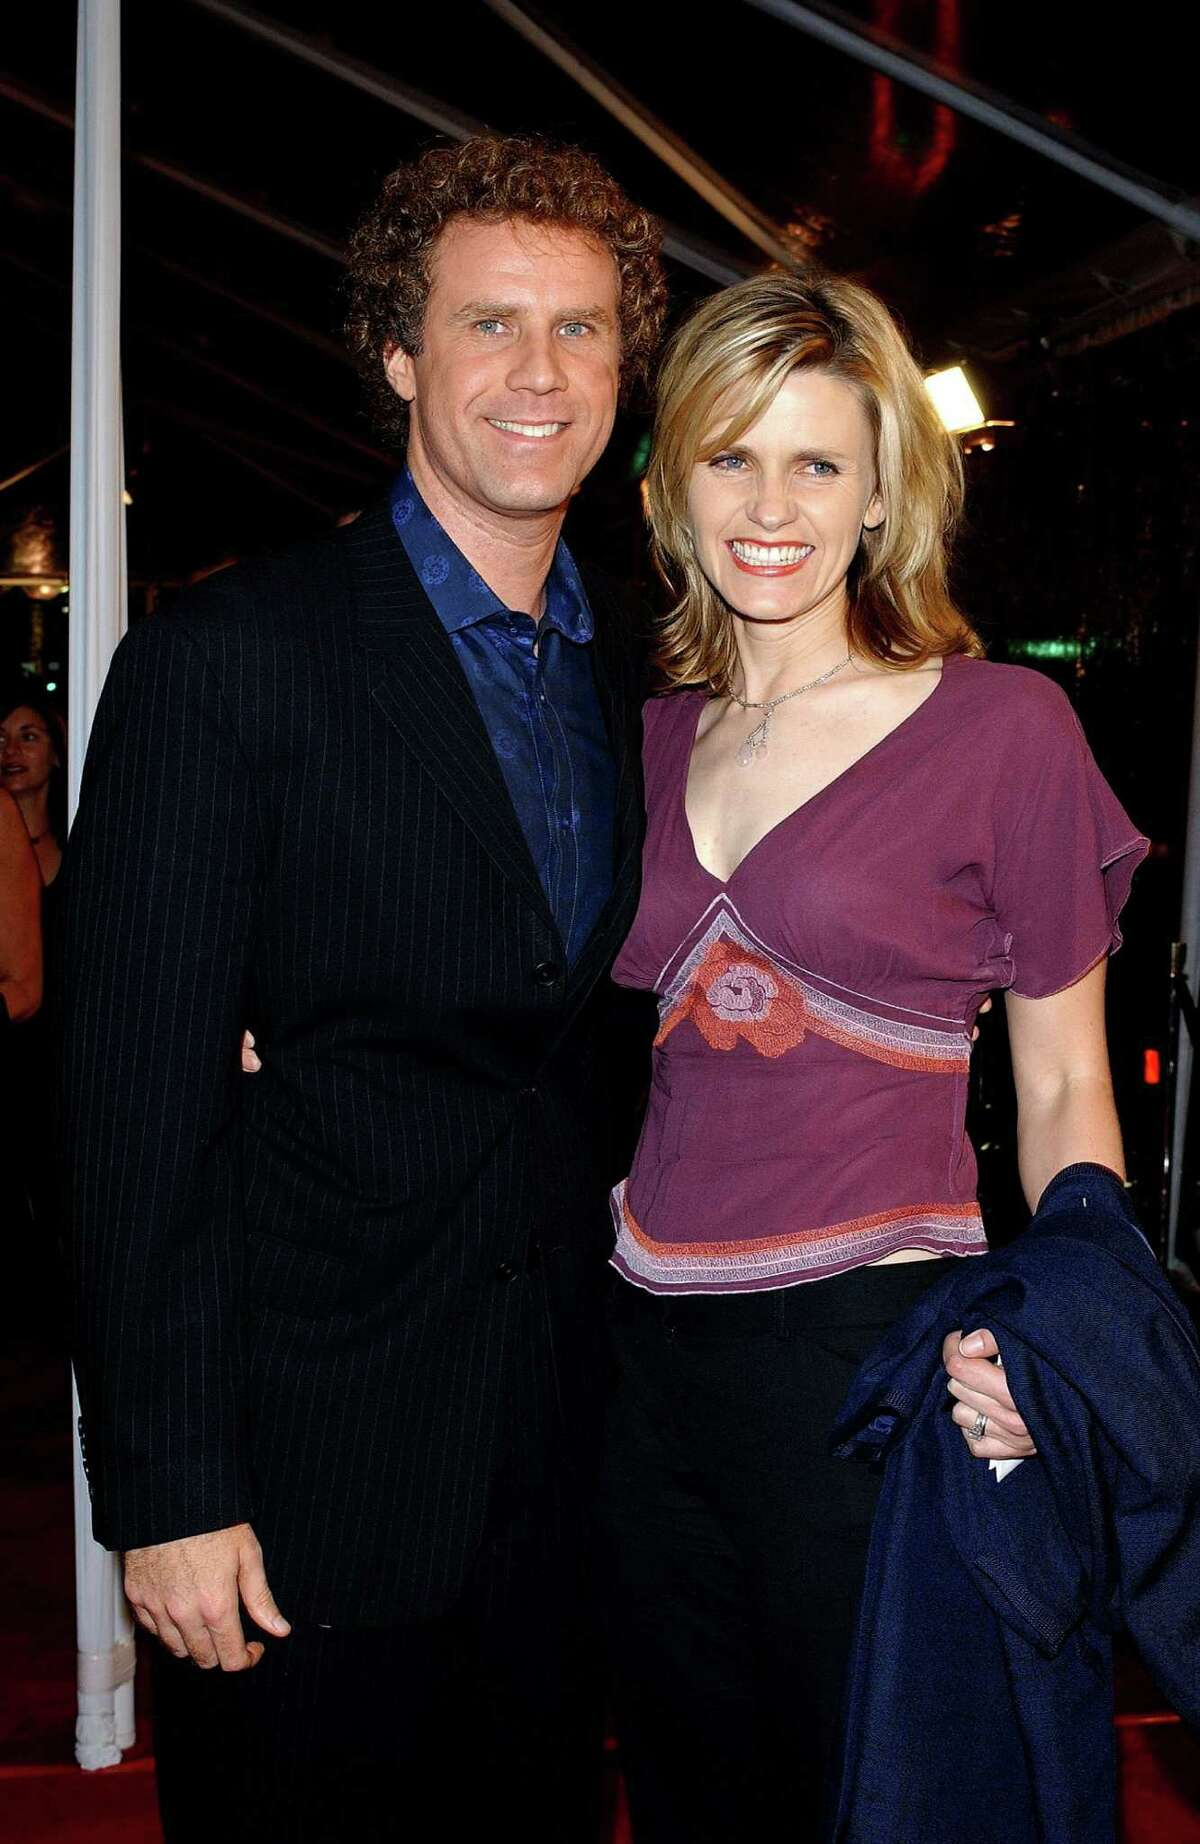 """Will Ferrell claims to have proposed to his wife Viveca Paulin by blindfolding her, taking her her to an undisclosed location then asking, """"Do you want to marry me?"""""""